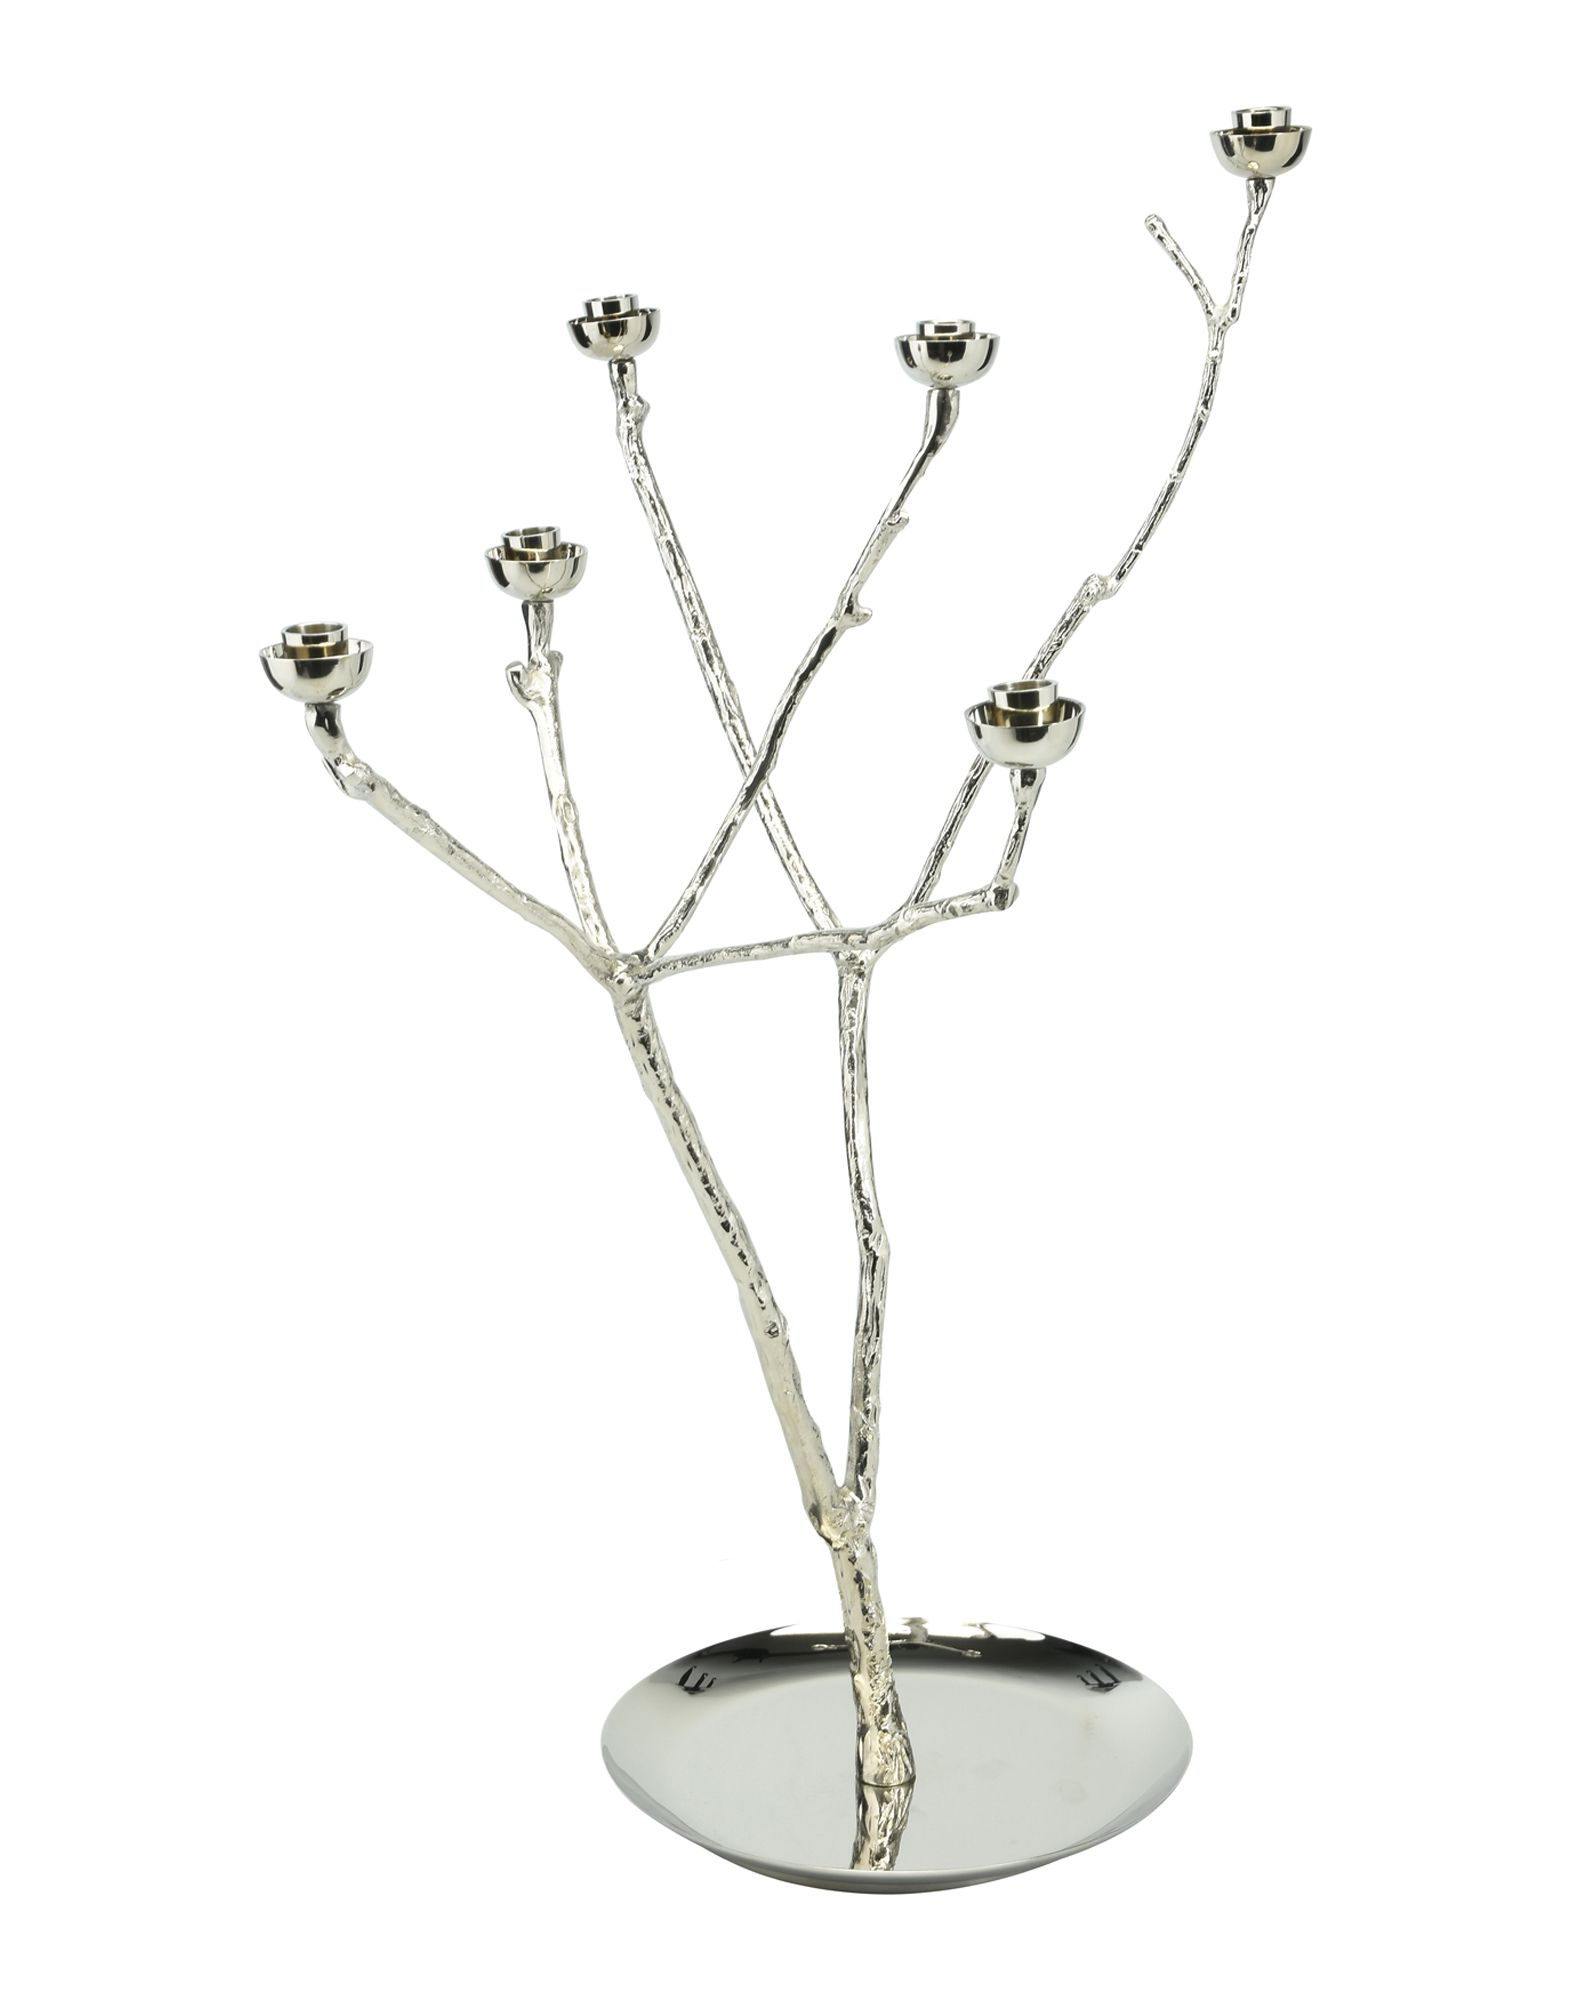 Pols Potten Small Object Candle Holder Branches Ljusstake Inredning